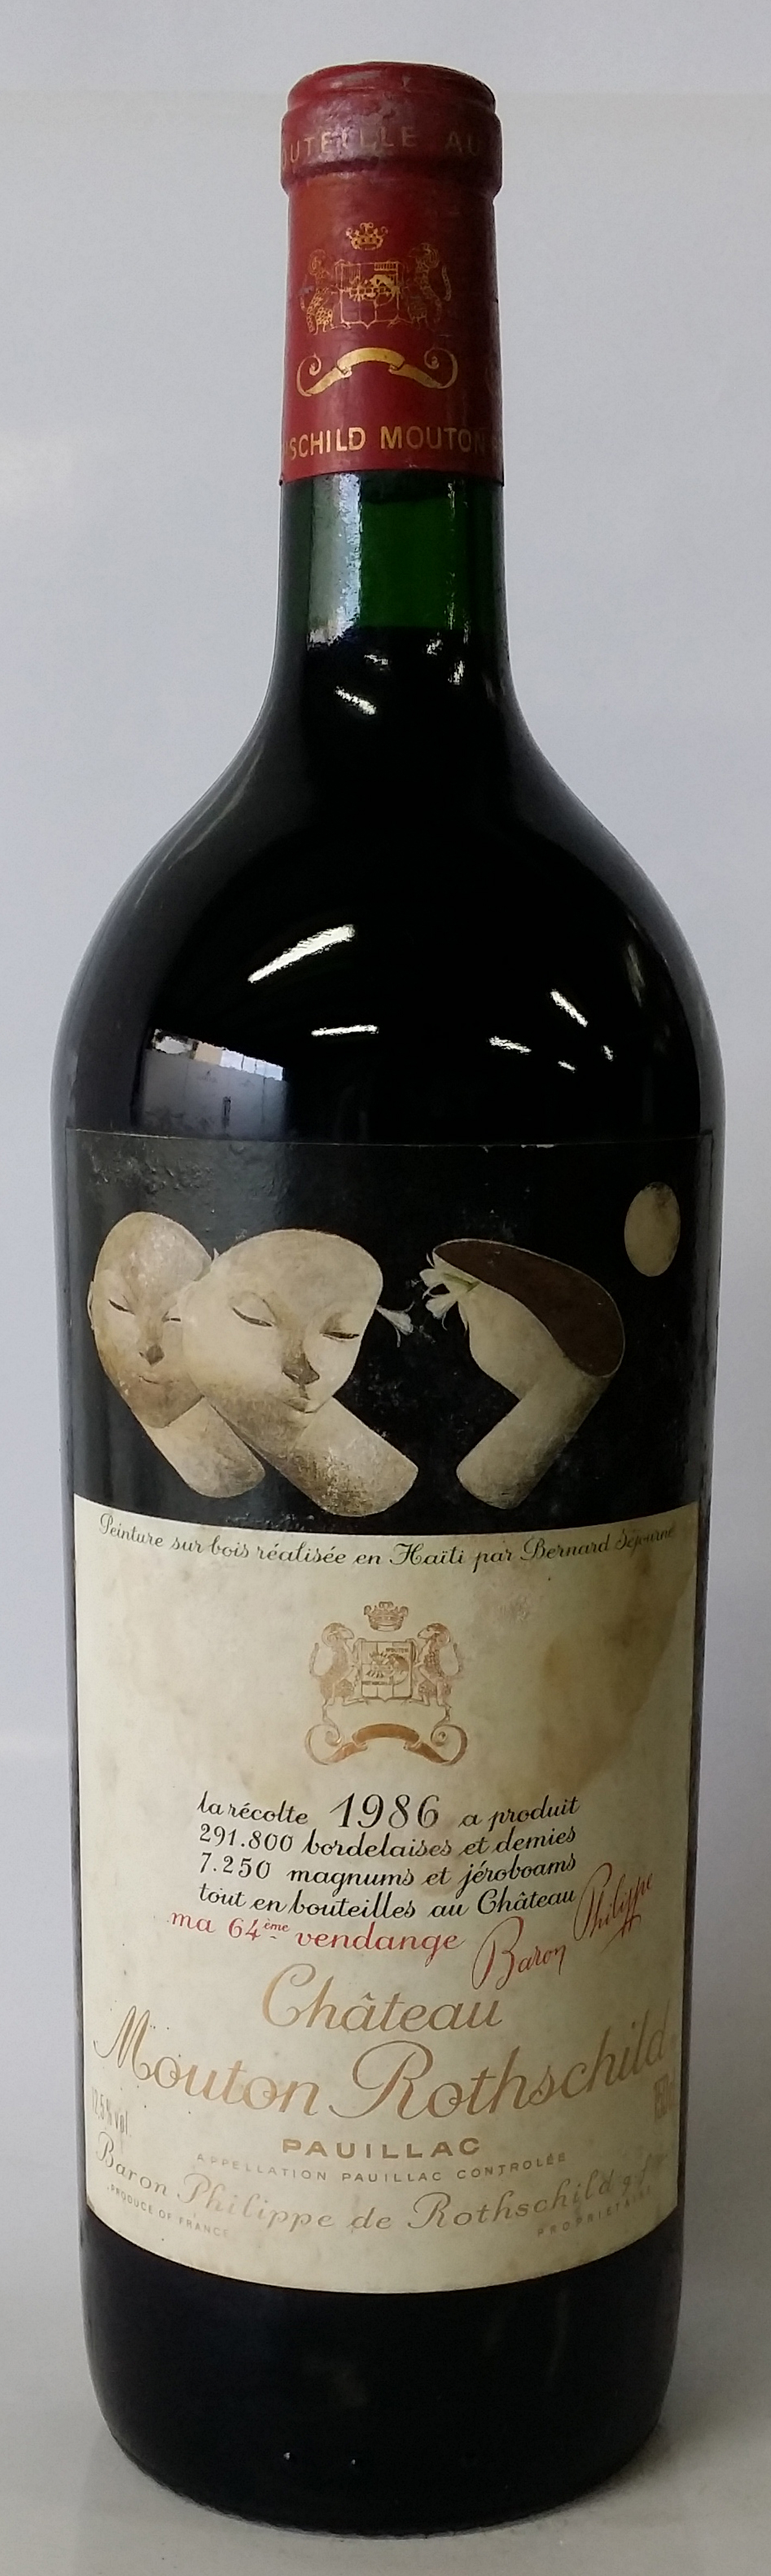 1986 Magnum Baron Philippe Rothschild Chateau Mouton Rothschild